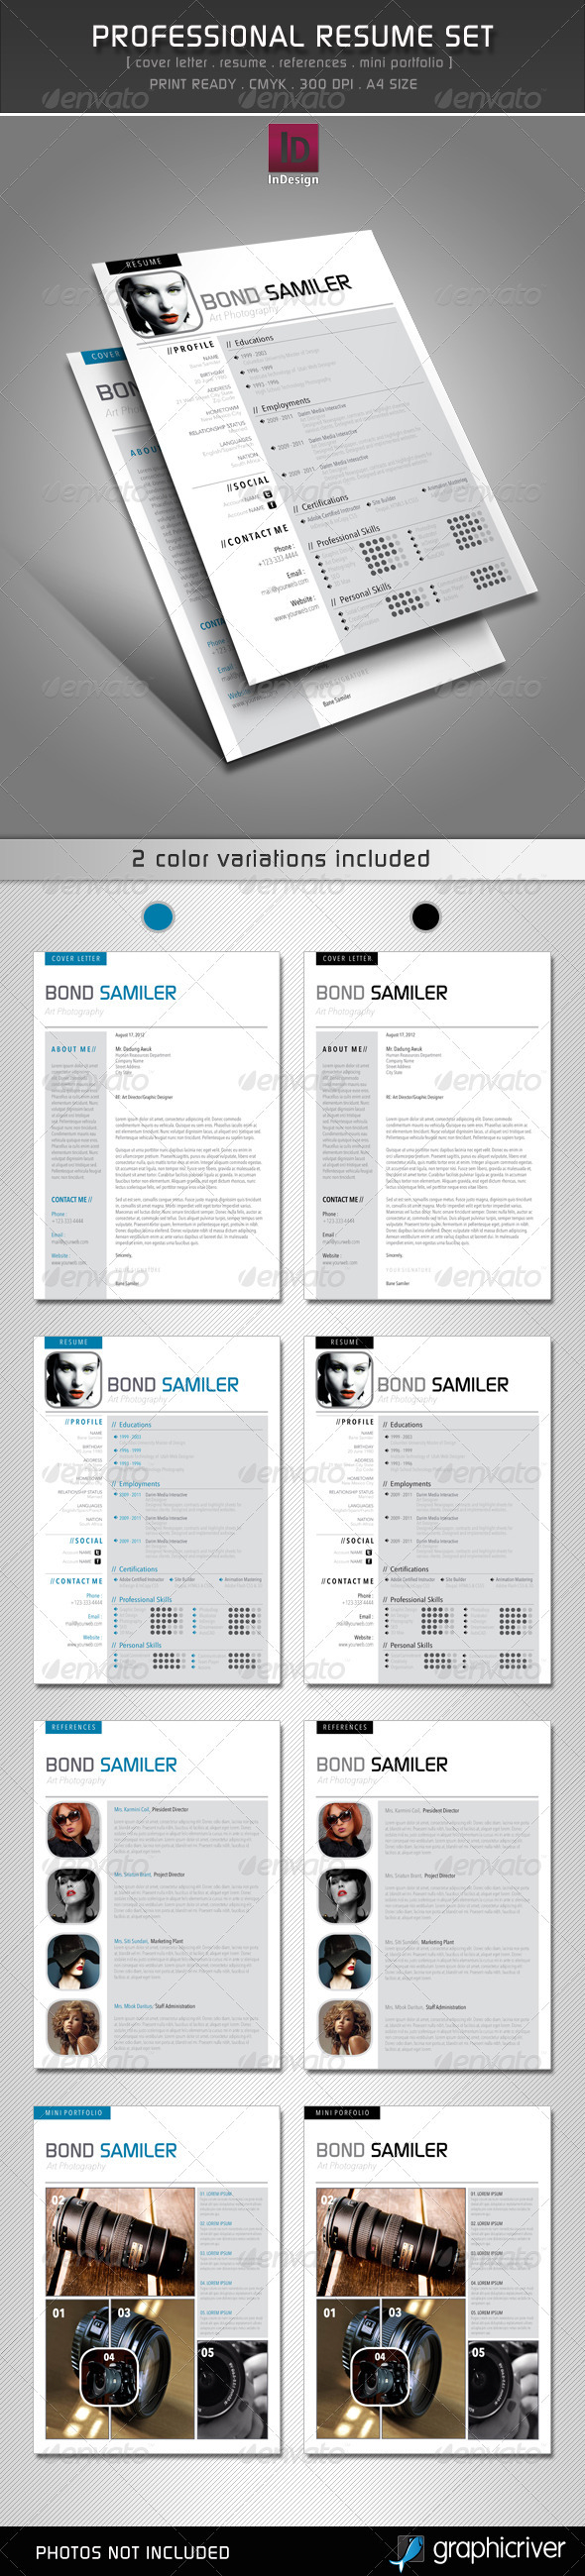 Professional Resume Set - Resumes Stationery